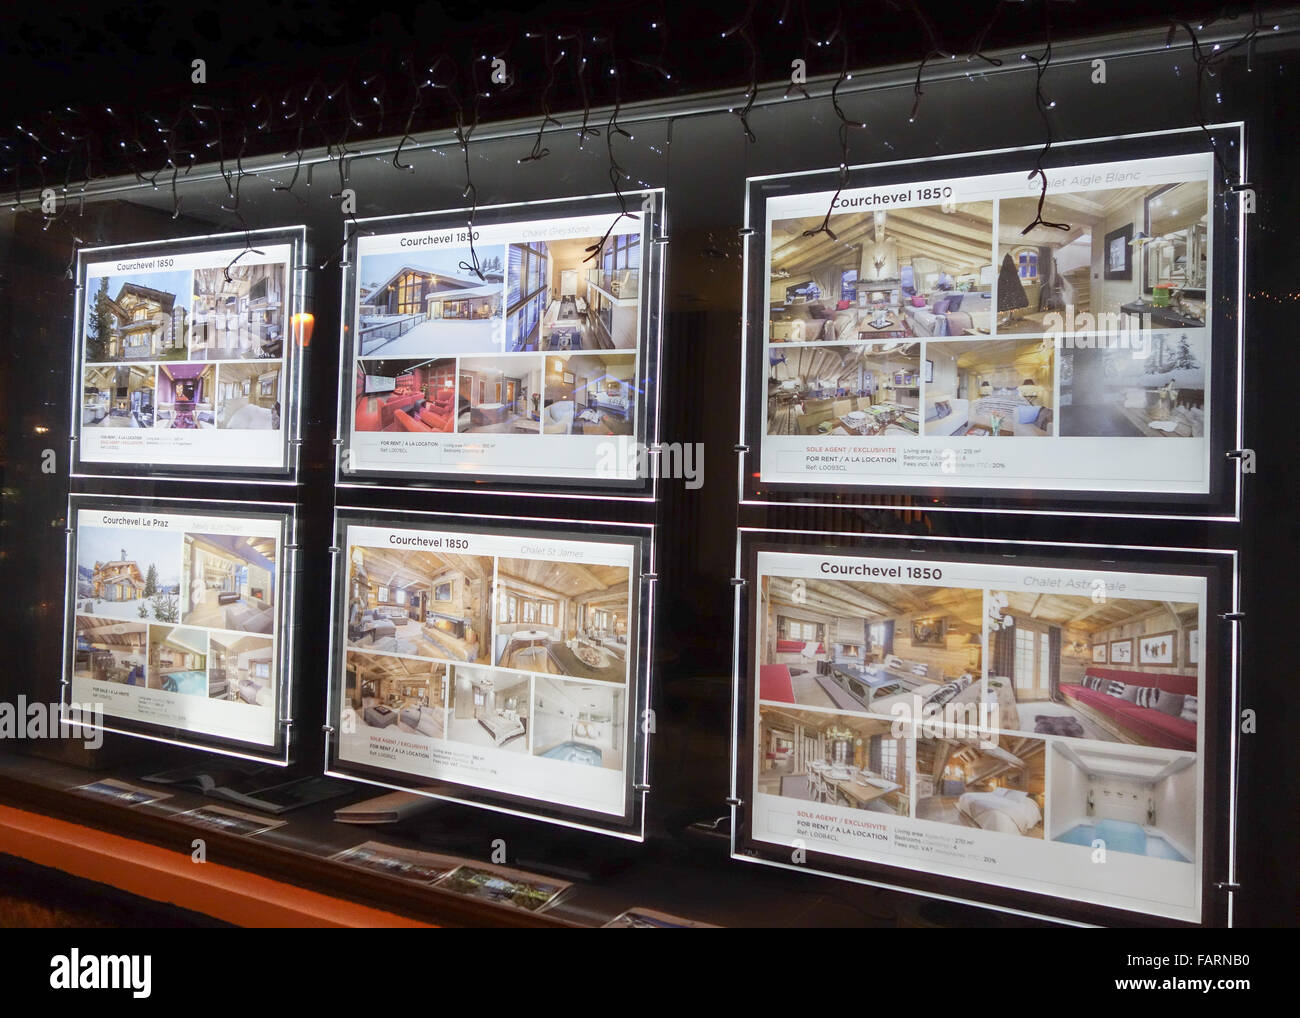 John Taylor luxury property real estate agent window display in the luxury ski resort of Courchevel 1850, France - Stock Image